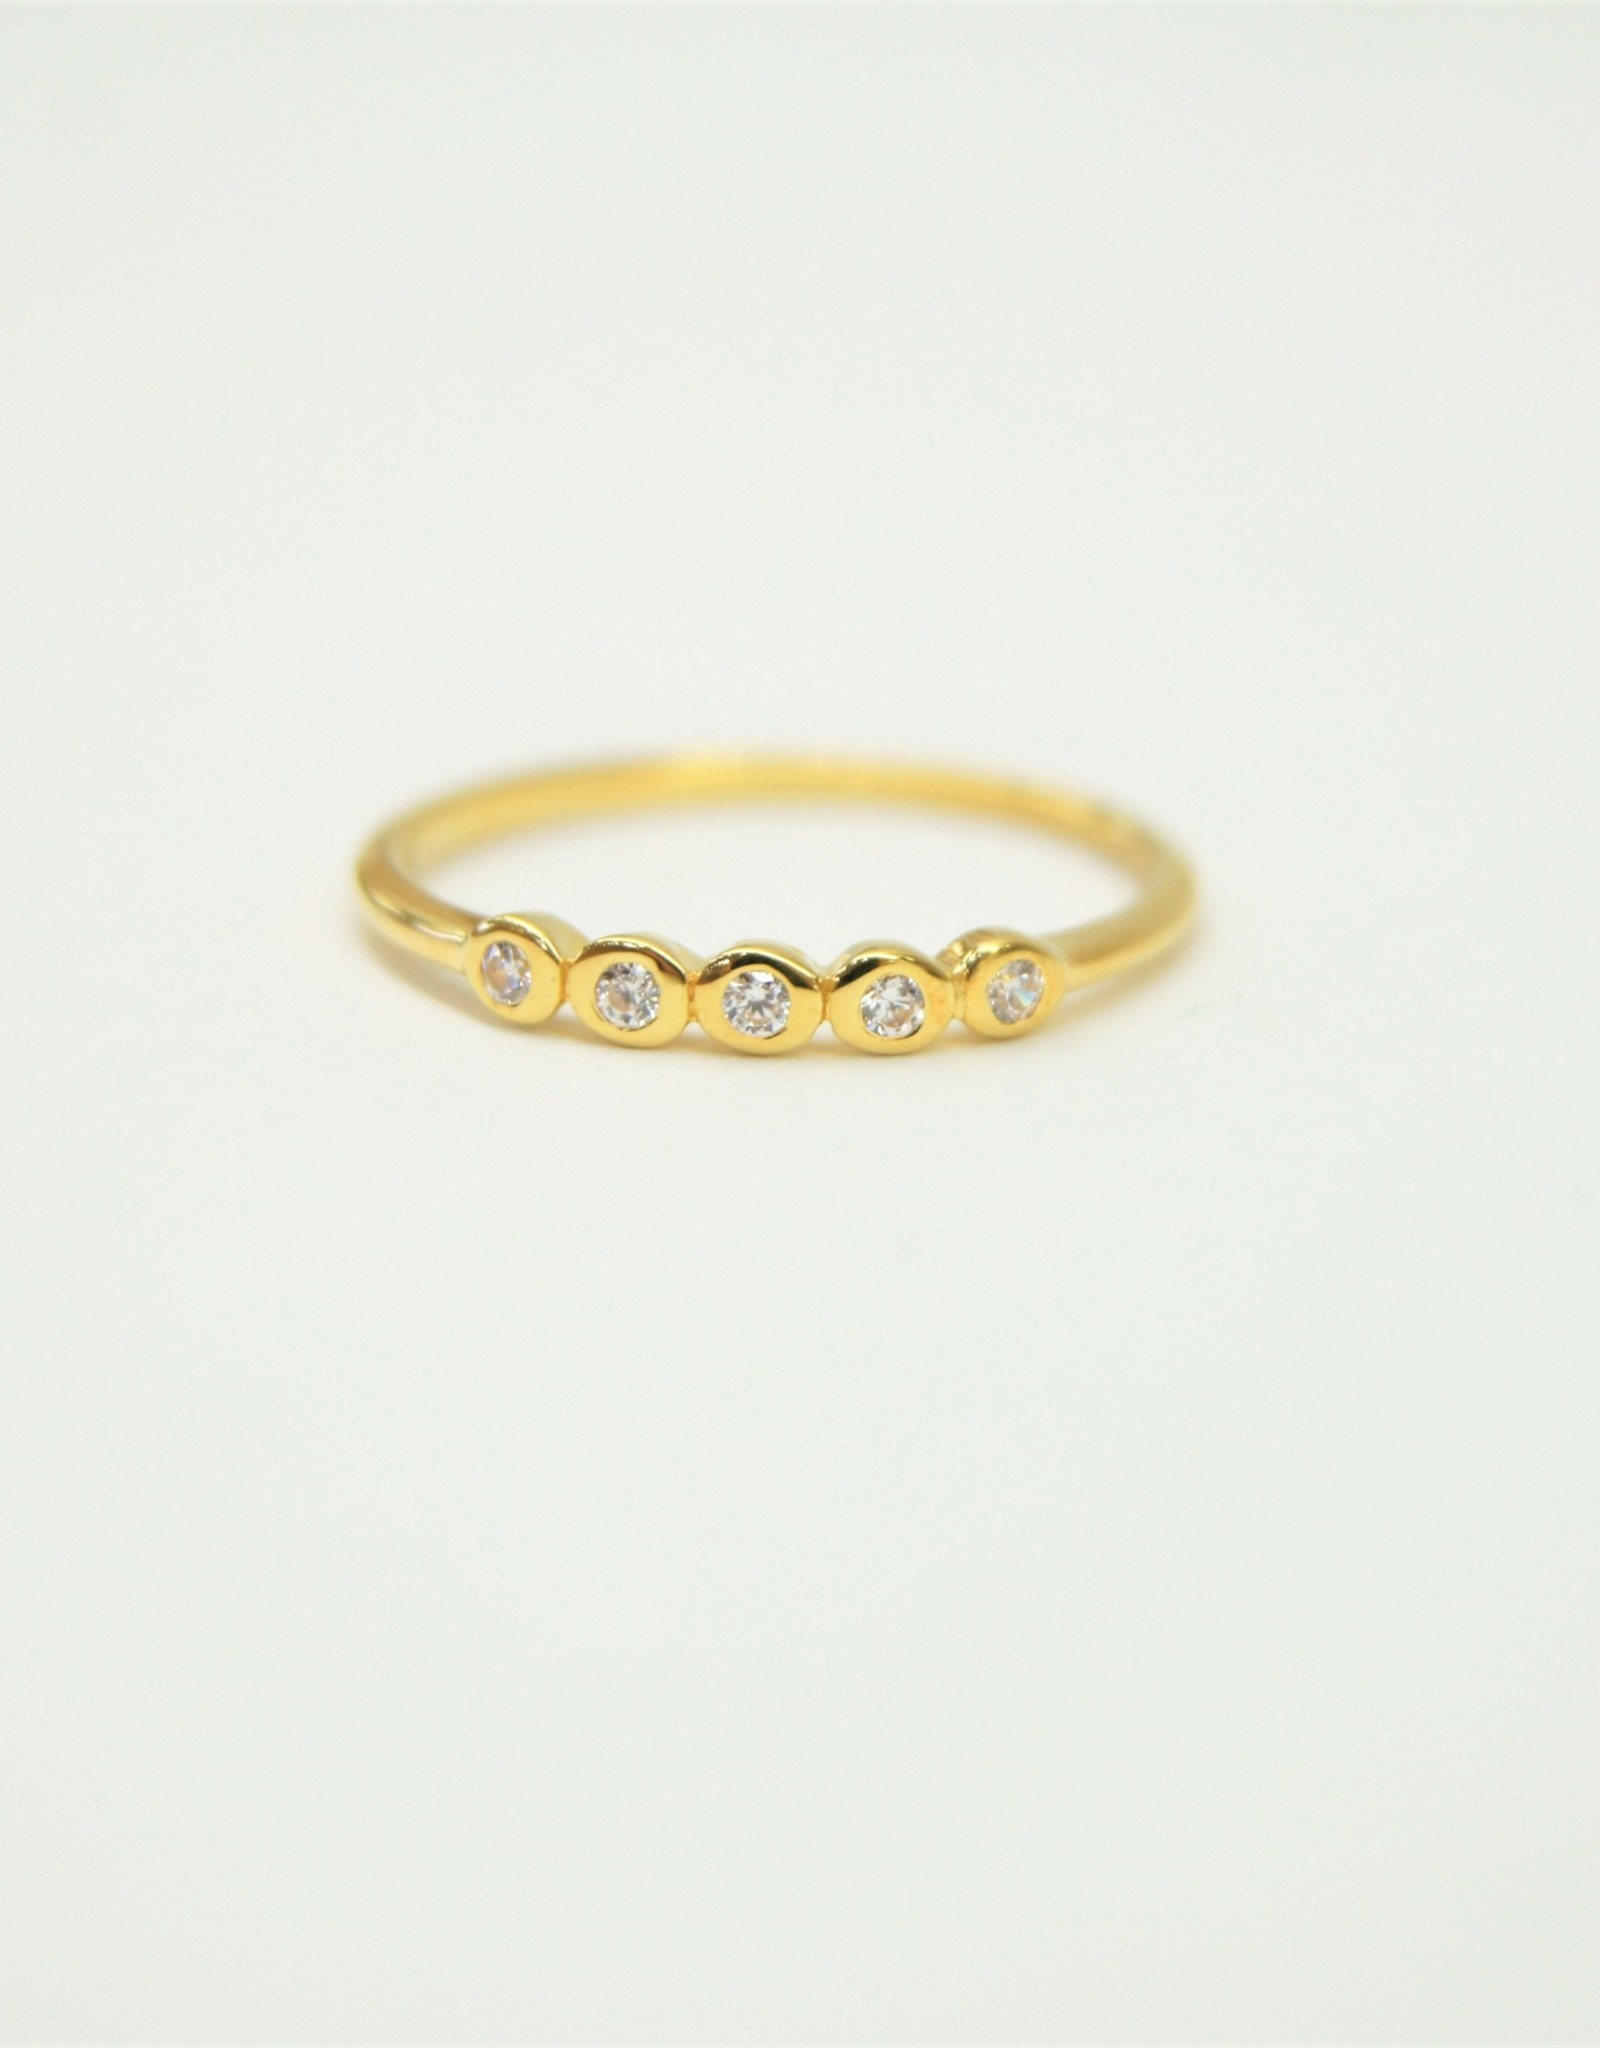 Tashi 5 Stone Bezel-set Stacker Ring with Cubic Zirconia - Gold Vermeil